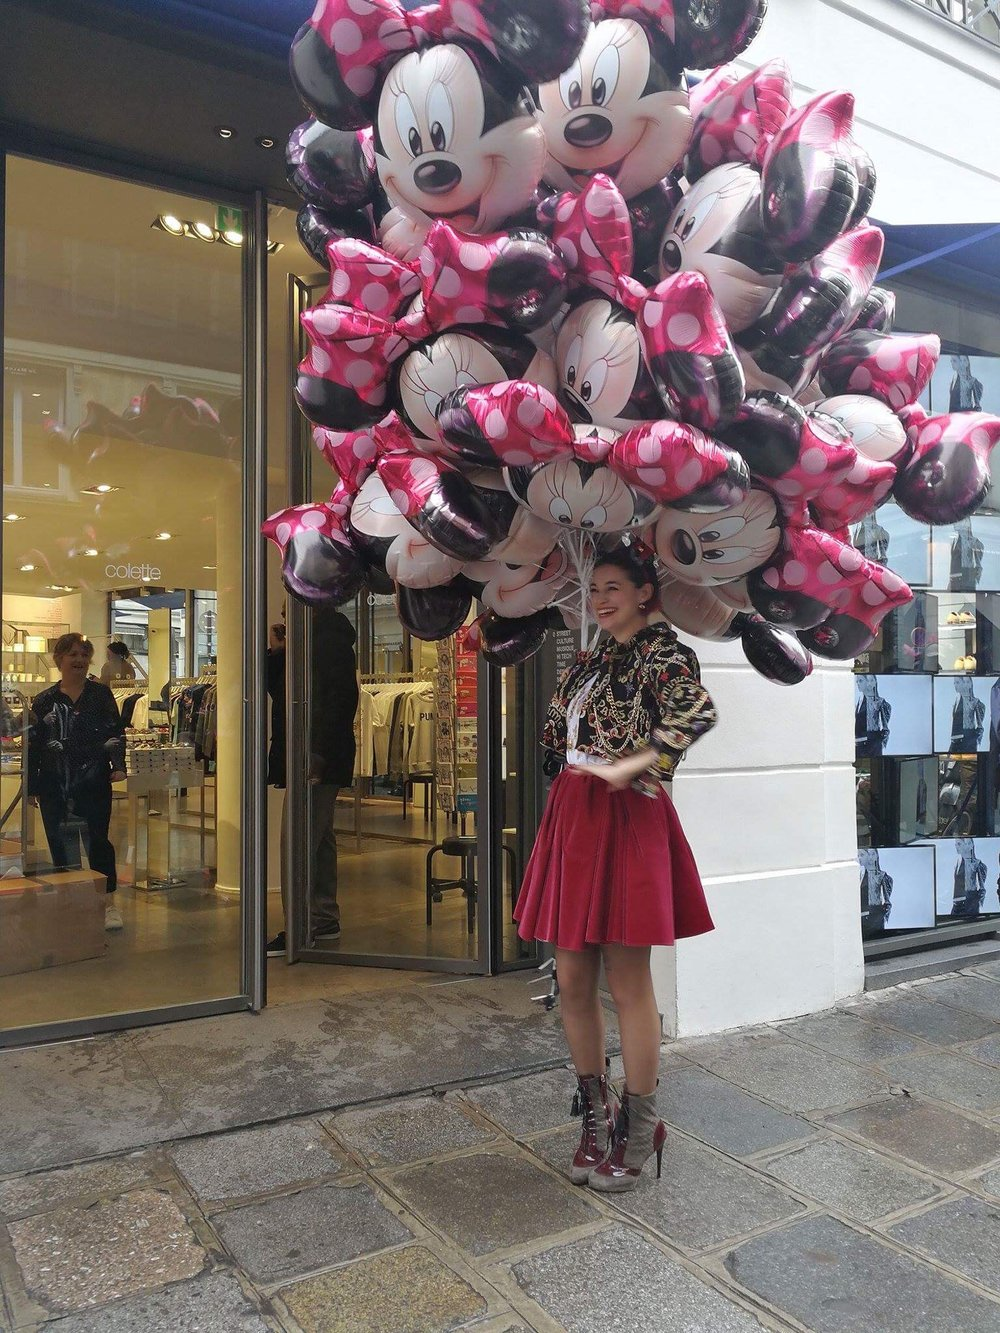 Marie Marquet in front of Colette with balloons